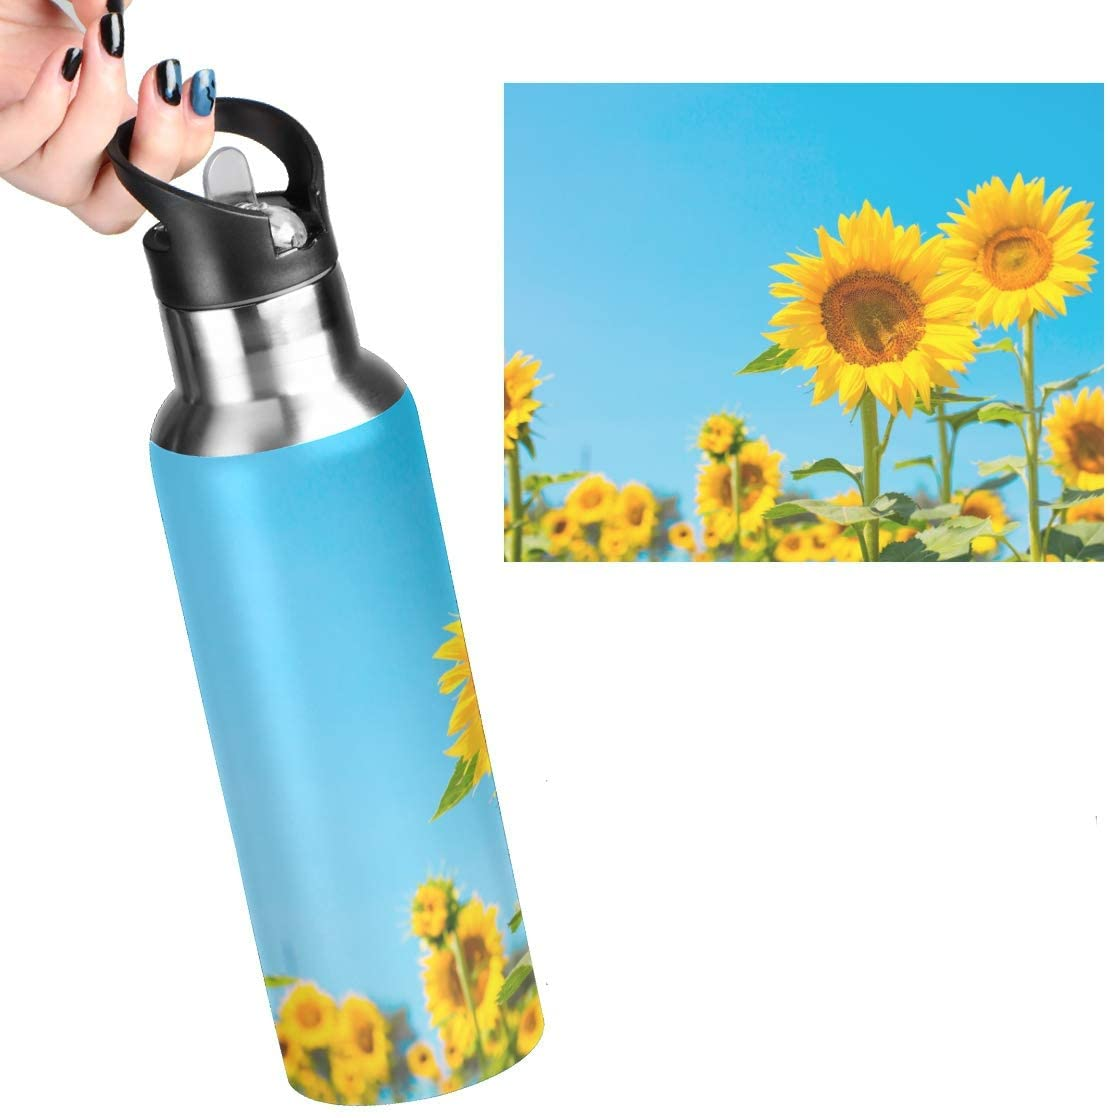 Exnundod Sunflower Field Leakproof Reusable Stainless Steel Water Bottle with Straw 20oz Bright Sky Coffee Travel Thermos Flask Double Walled Vacuum Insulated Thermoses for Women Men Kids.